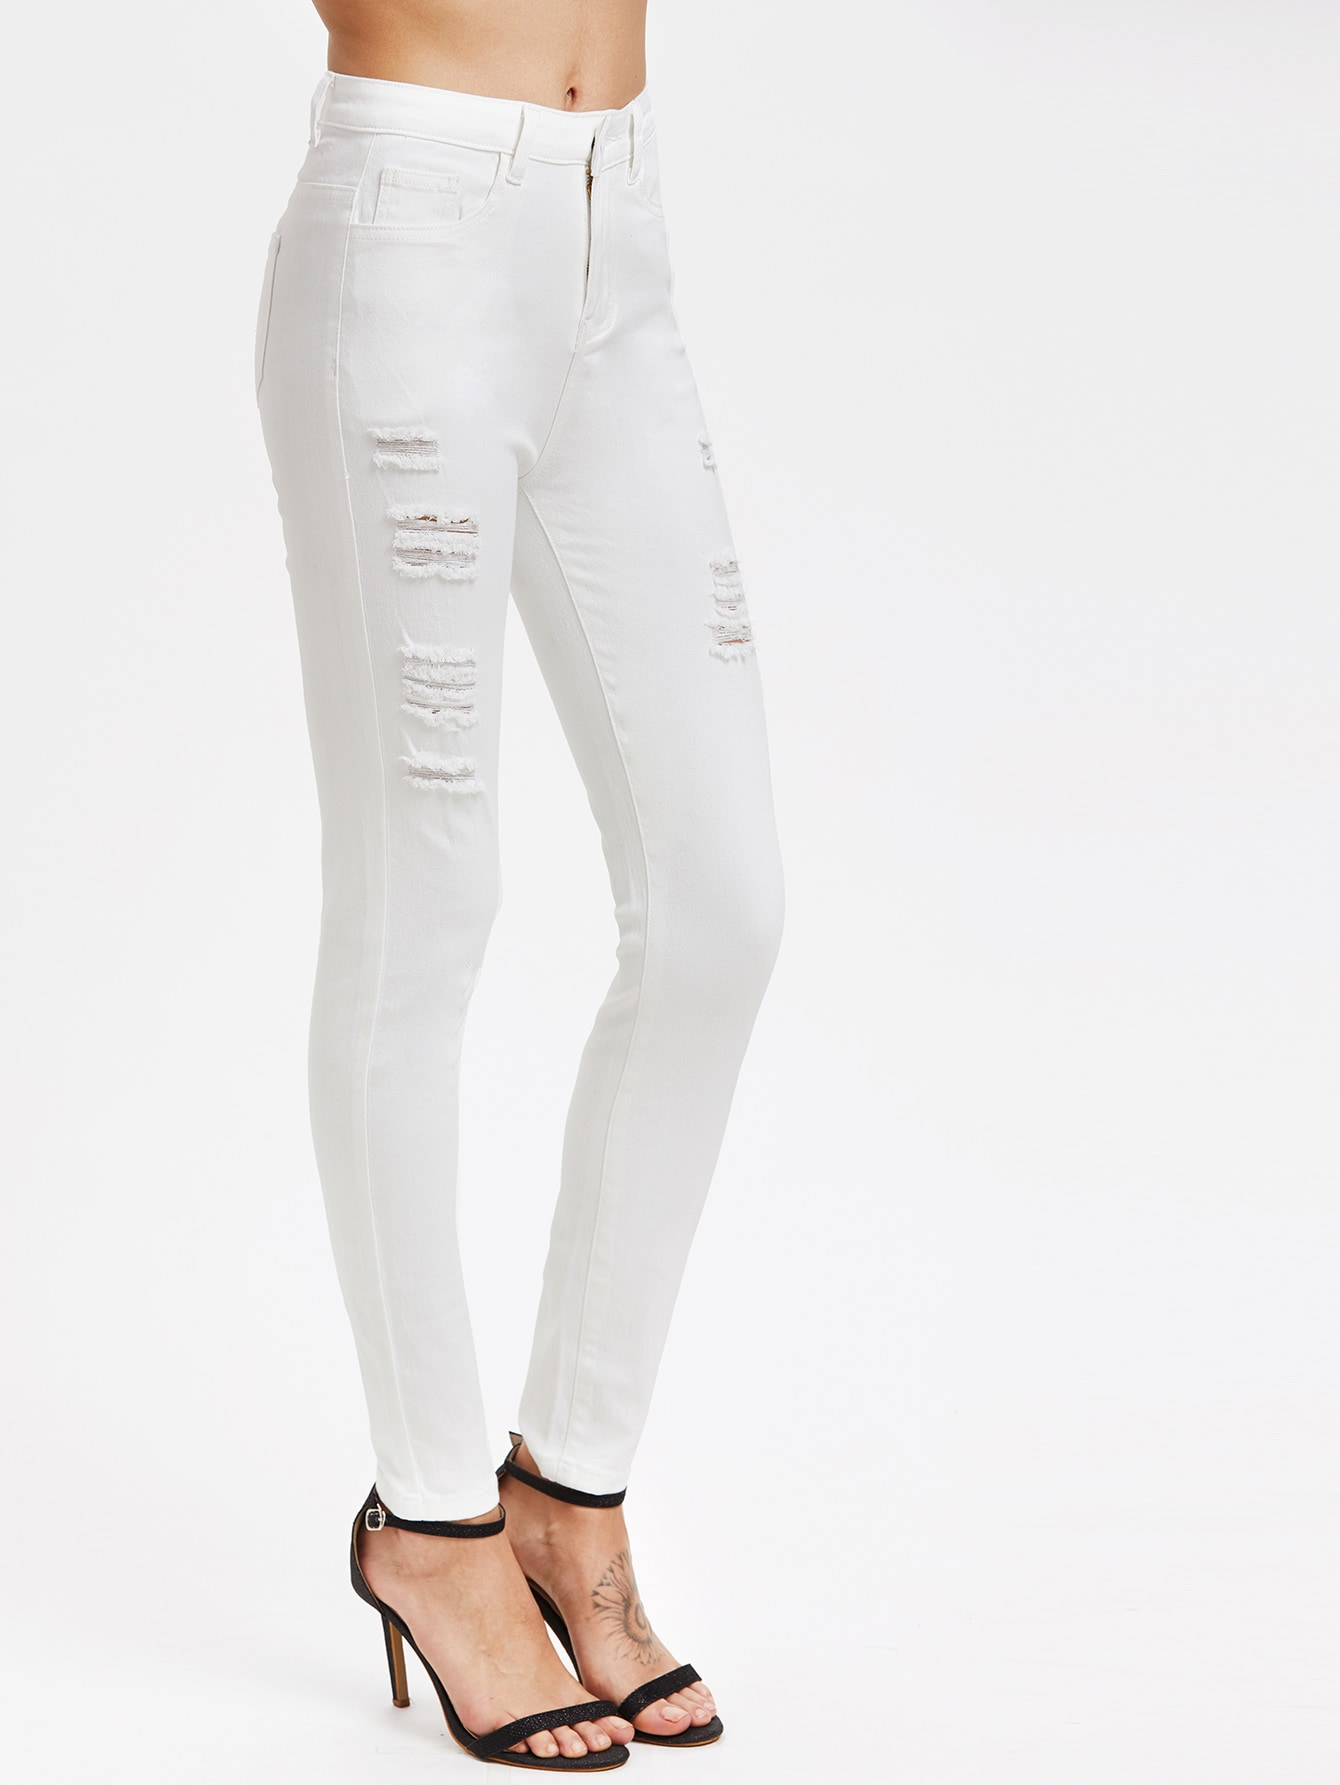 Middle Rise Distressed Skinny Jeans embroidered distressed skinny jeans